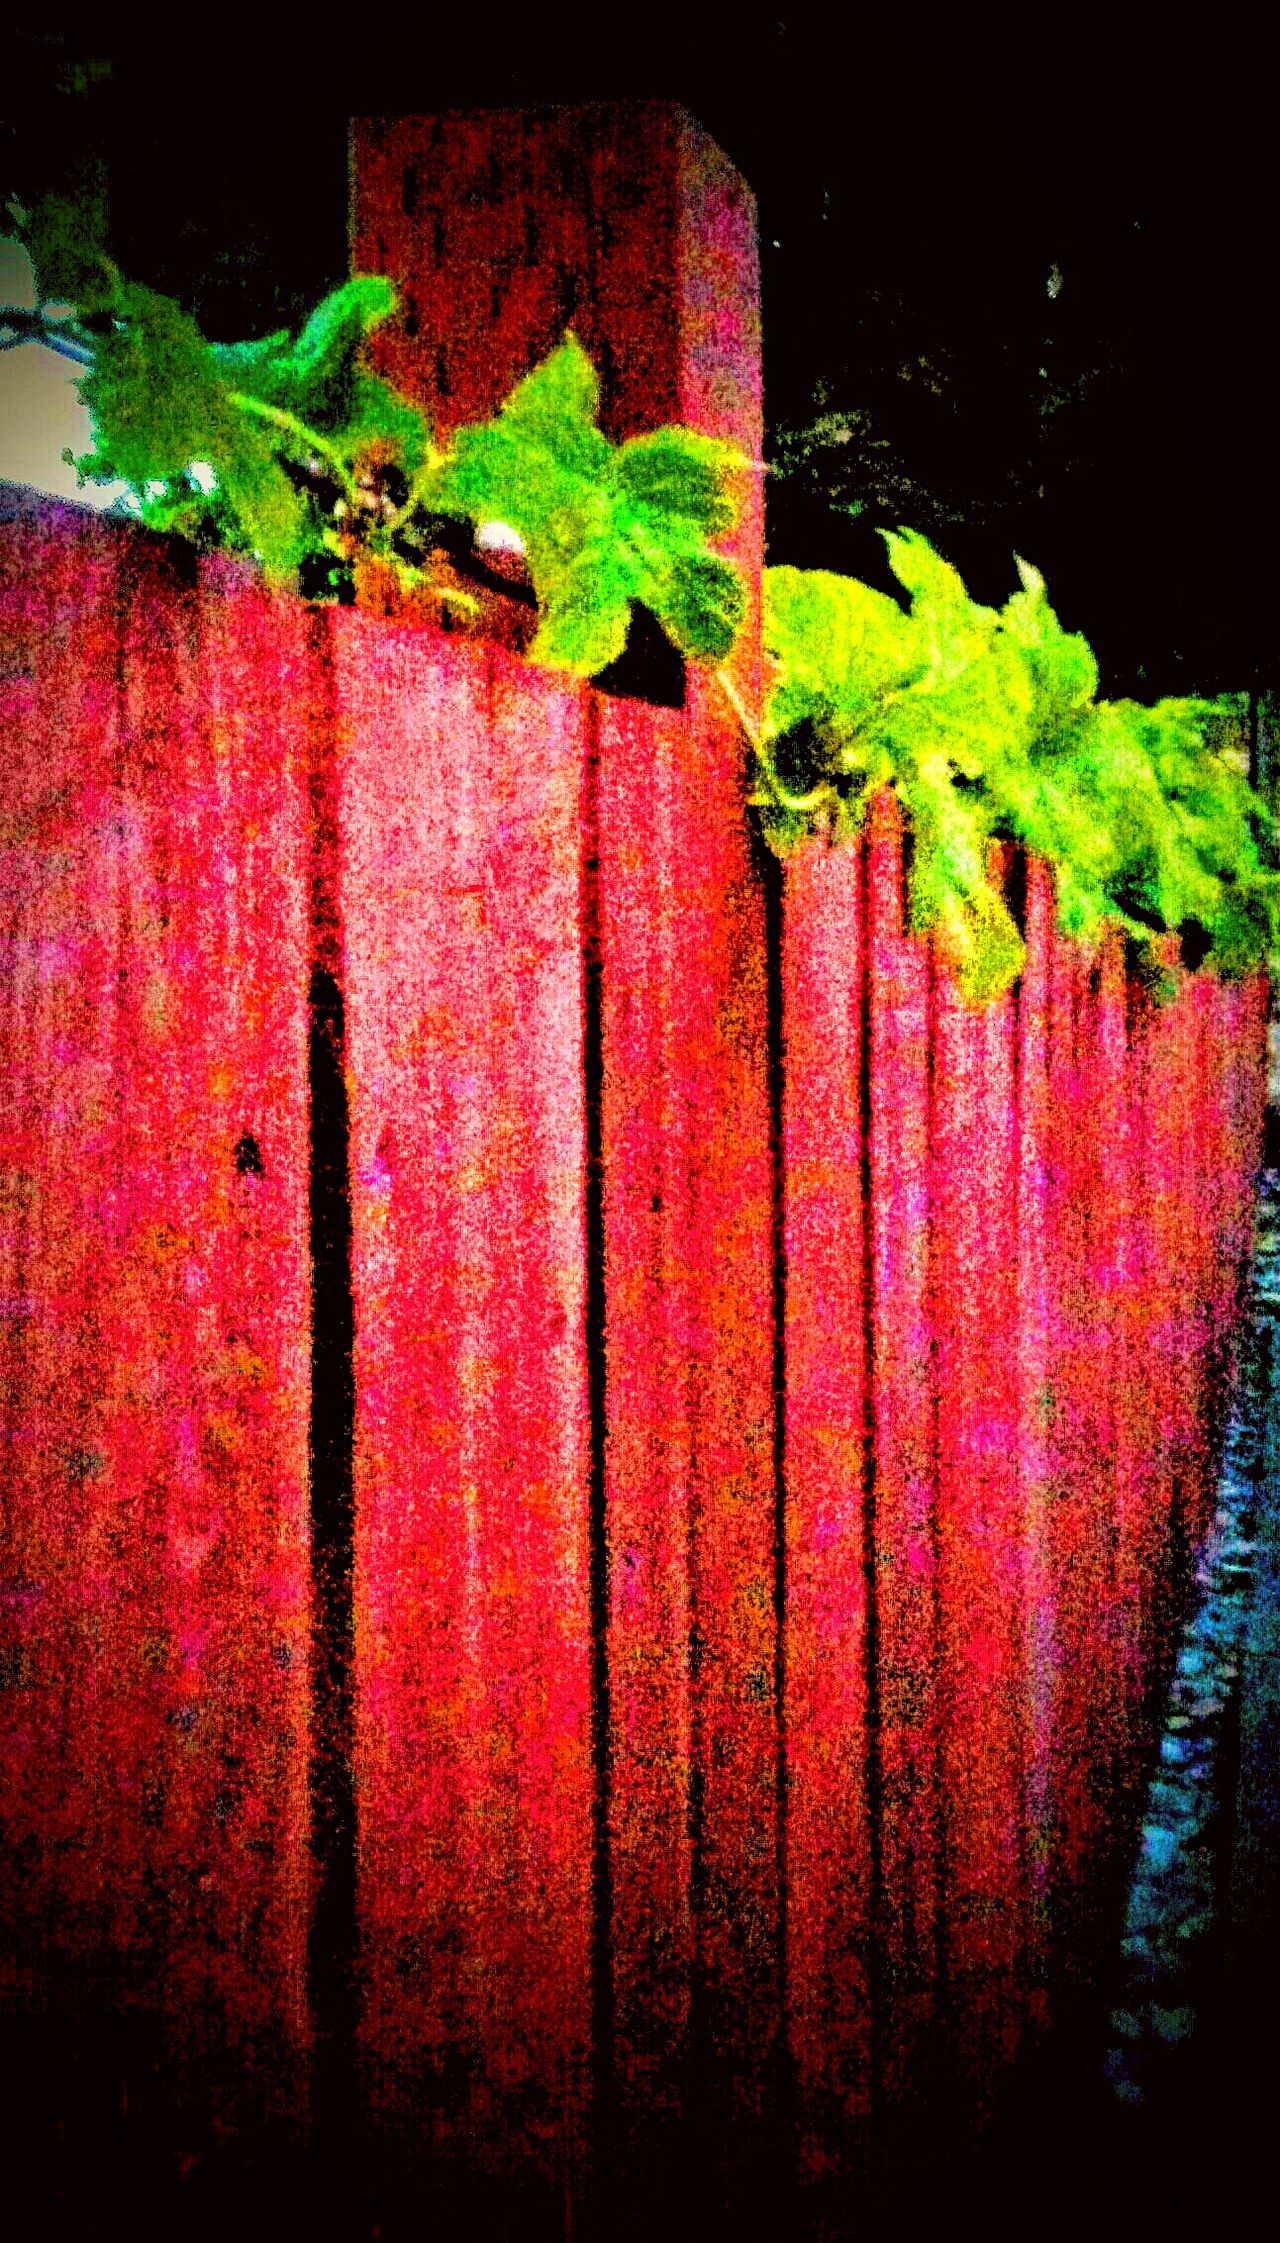 Vines On Fence Vines And Leaf Red Fence Beauty In Ordinary Things Taking Photos Check This Out Relaxing Hanging Out Enjoying Life Whatever You Want World Photography Day 43 Golden Moments Lost In The Moment Oregonphotographer EyeEm Nature Lover EyeEm Gallery EyeEm Best Shots Angles What It Means My Point Of View Picture Of The Day Fence View